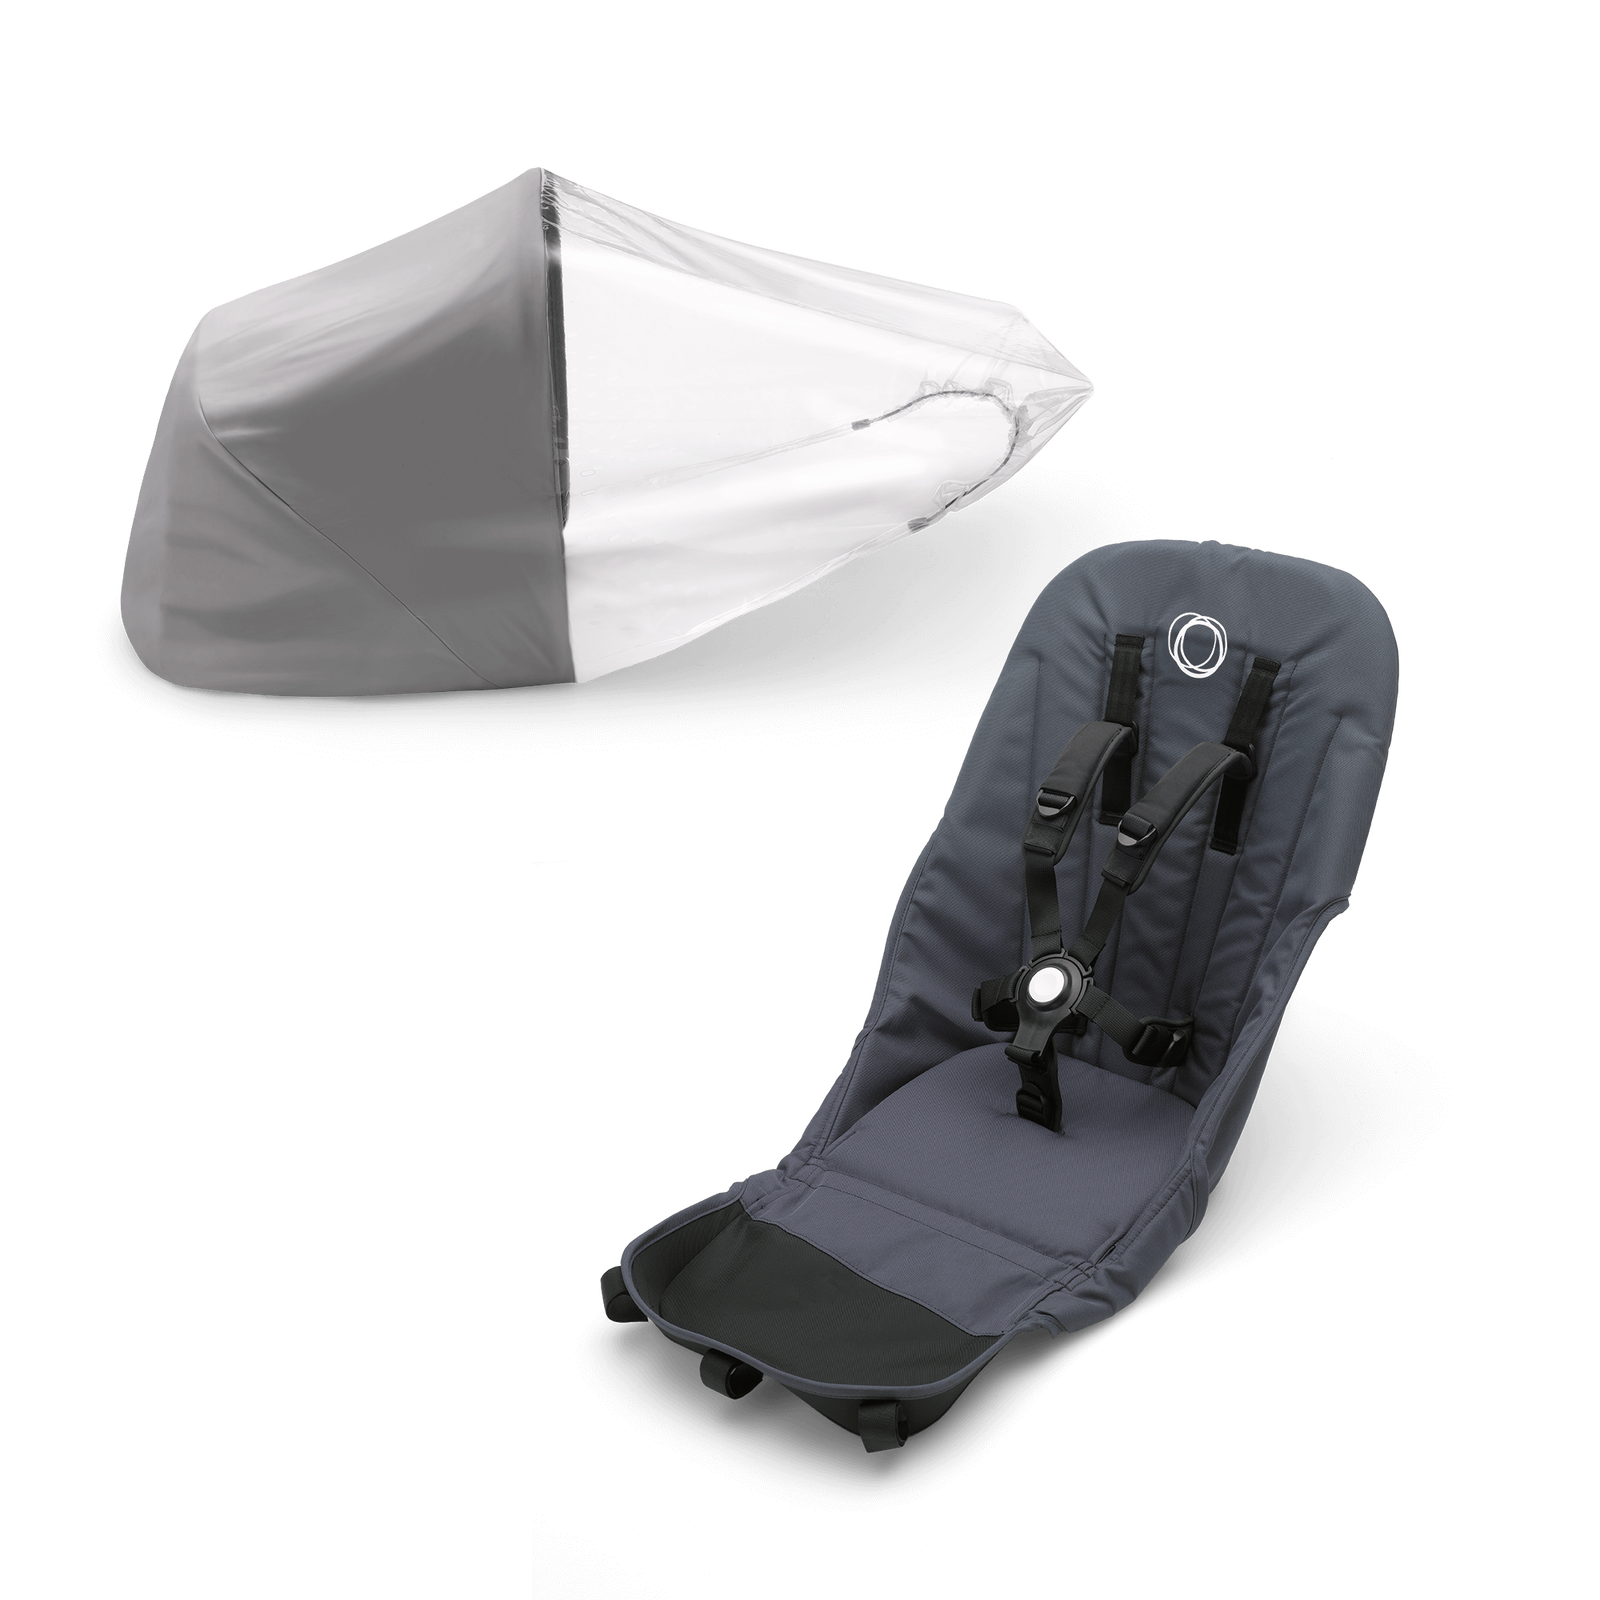 Habillage complémentaire Bugaboo Donkey 2 Duo